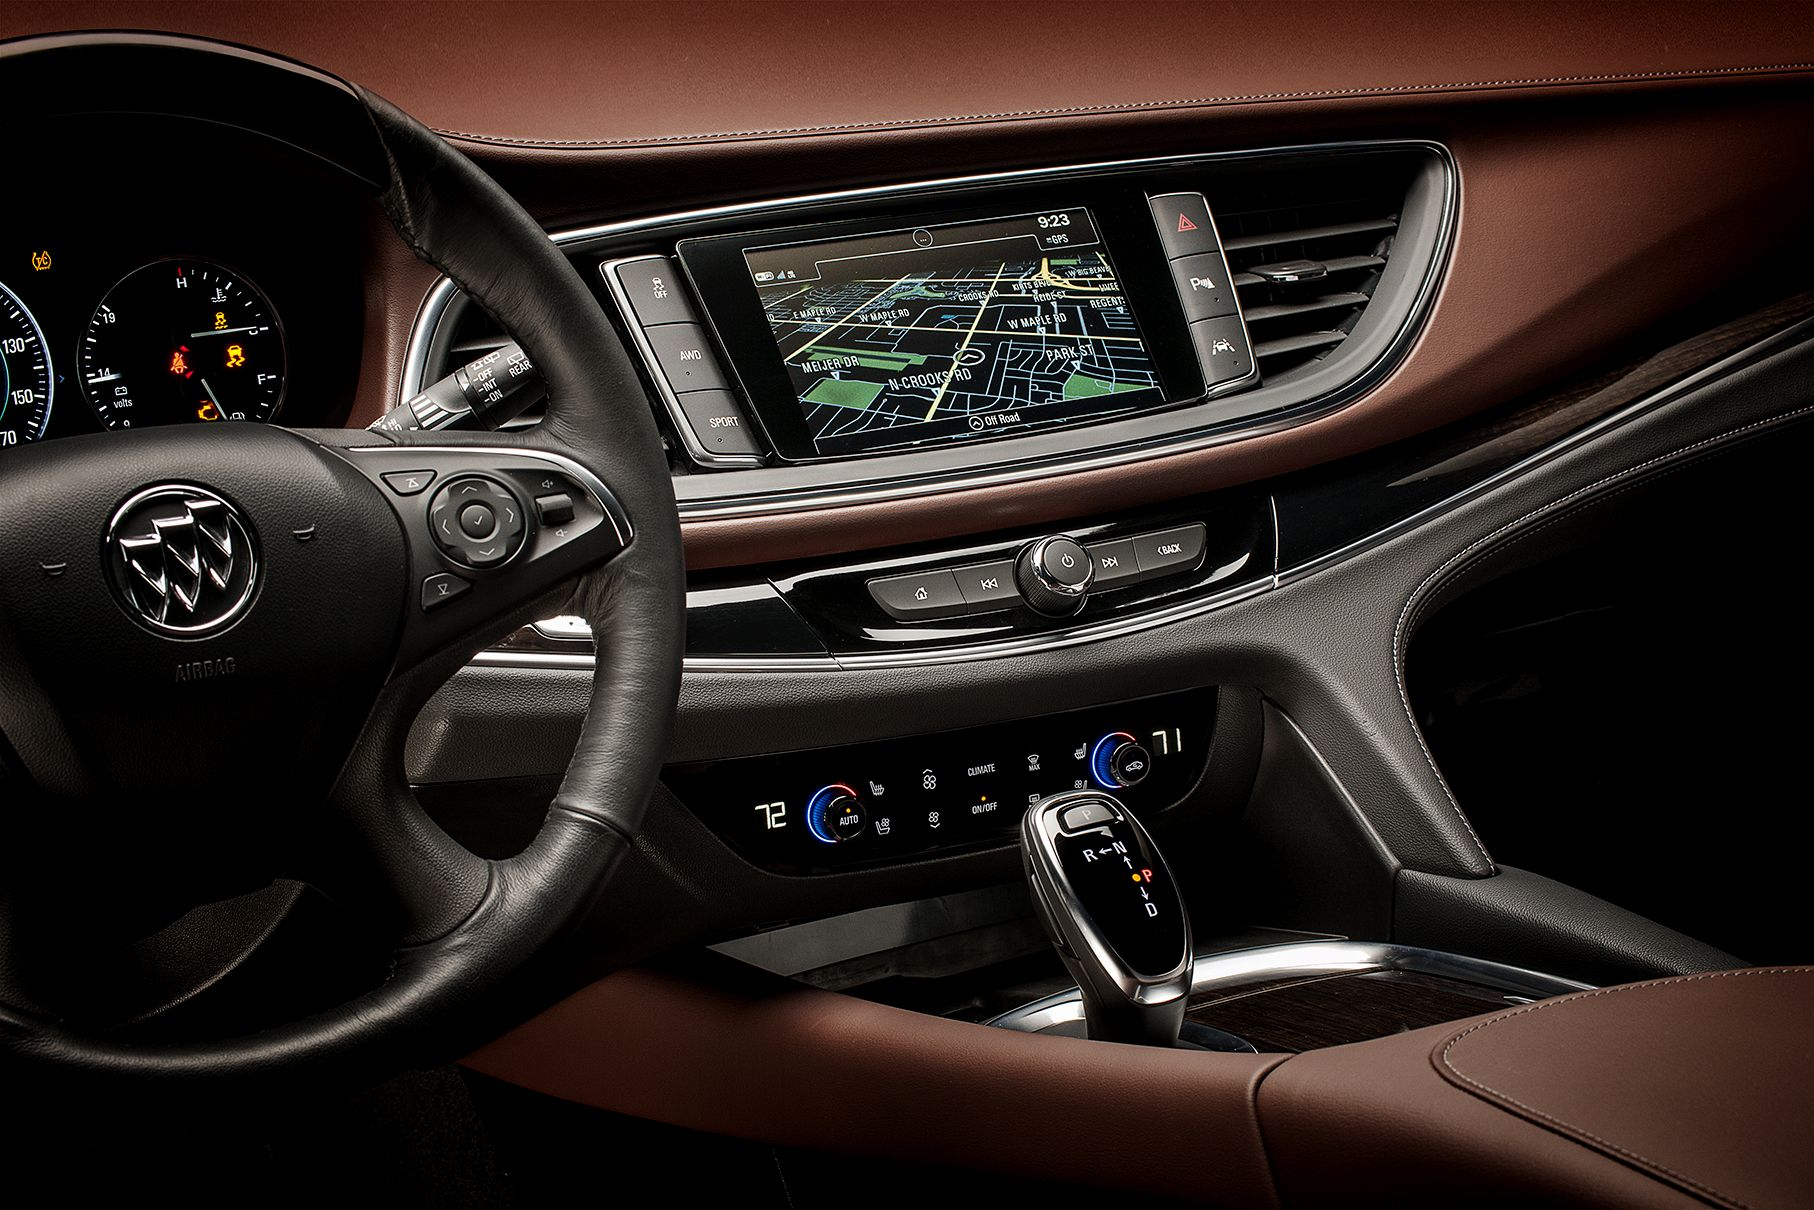 2018 Buick Enclave Avenir Driver Pov Showing Center Stack With Touch Screen Navigation Entertainment And Climate Controls Buick Enclave Buick Navigation